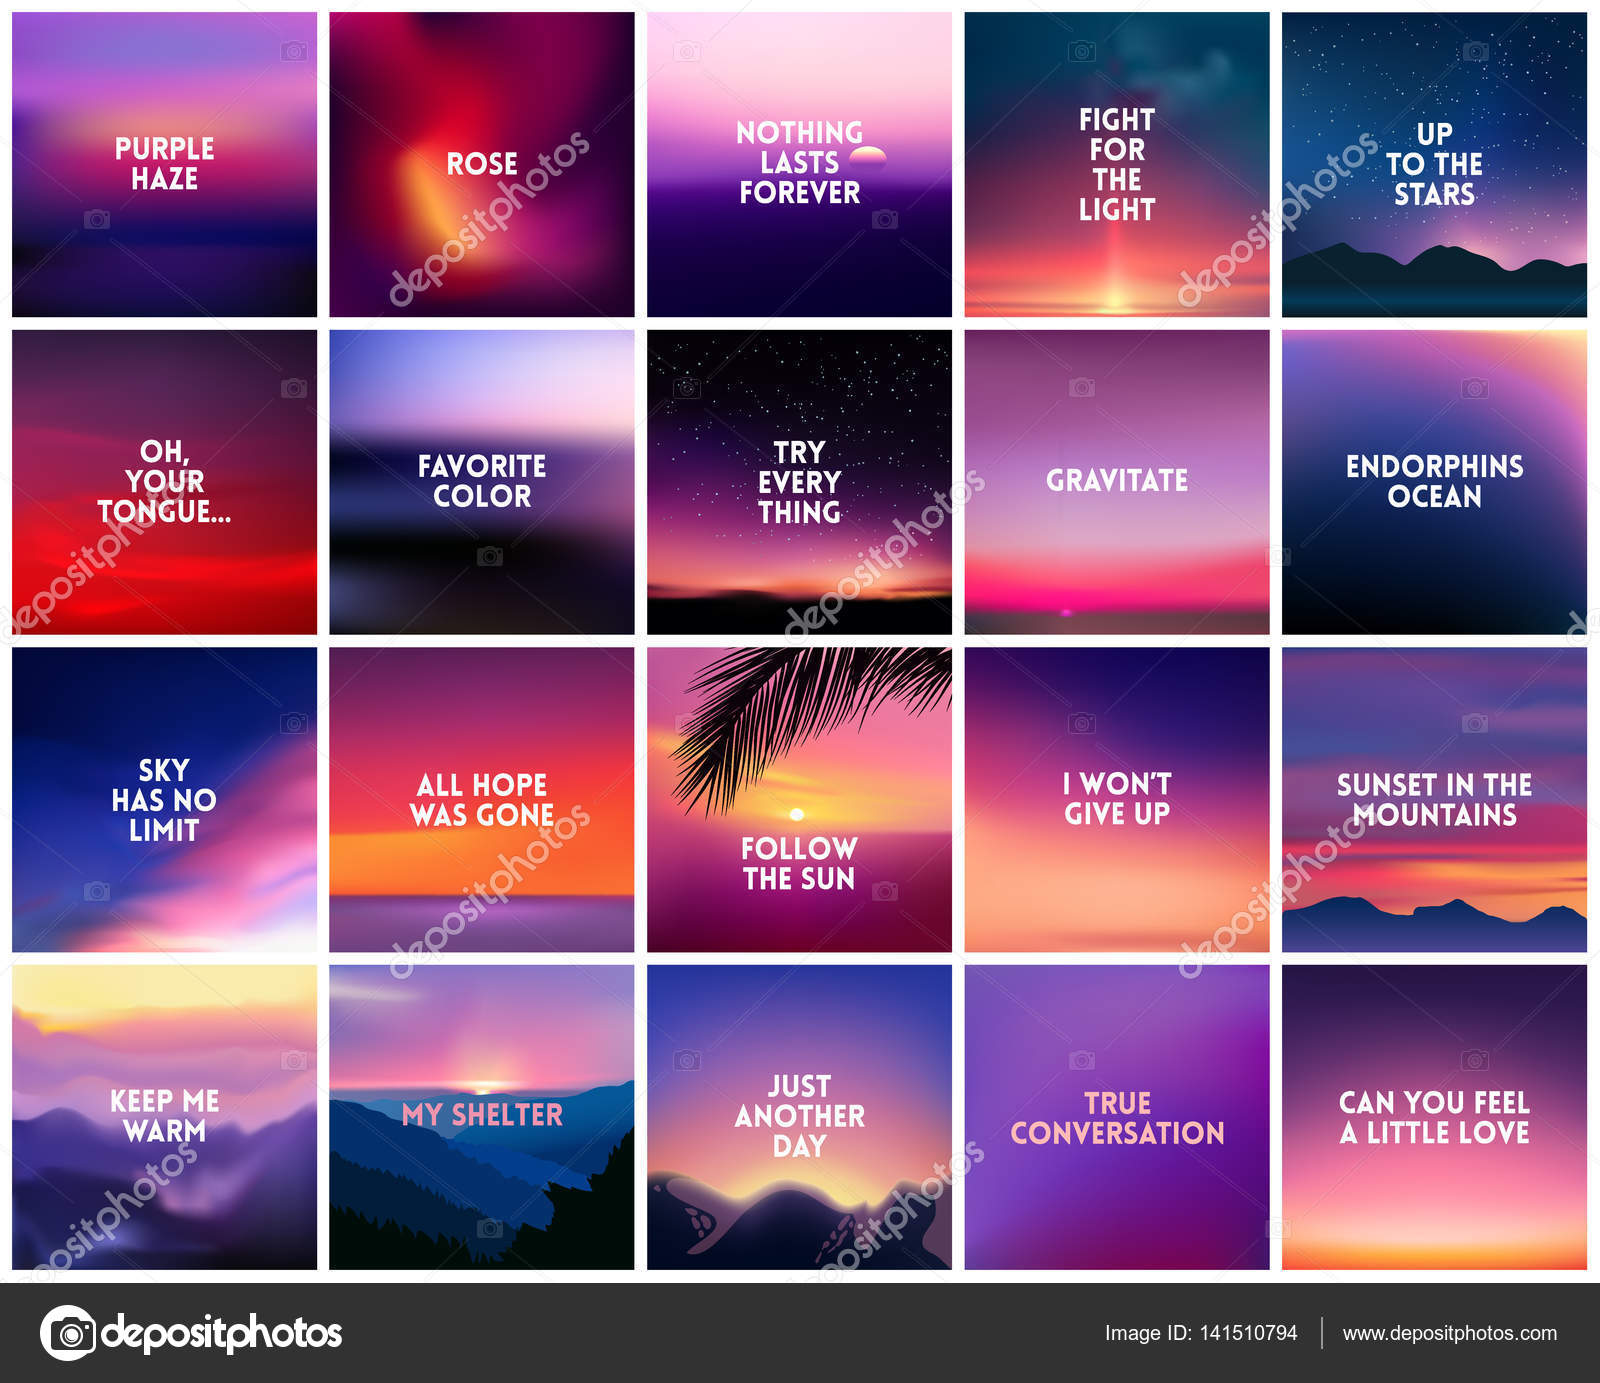 Nature Images With Quotes Download: BIG Set Of 20 Square Blurred Nature Purple Pink